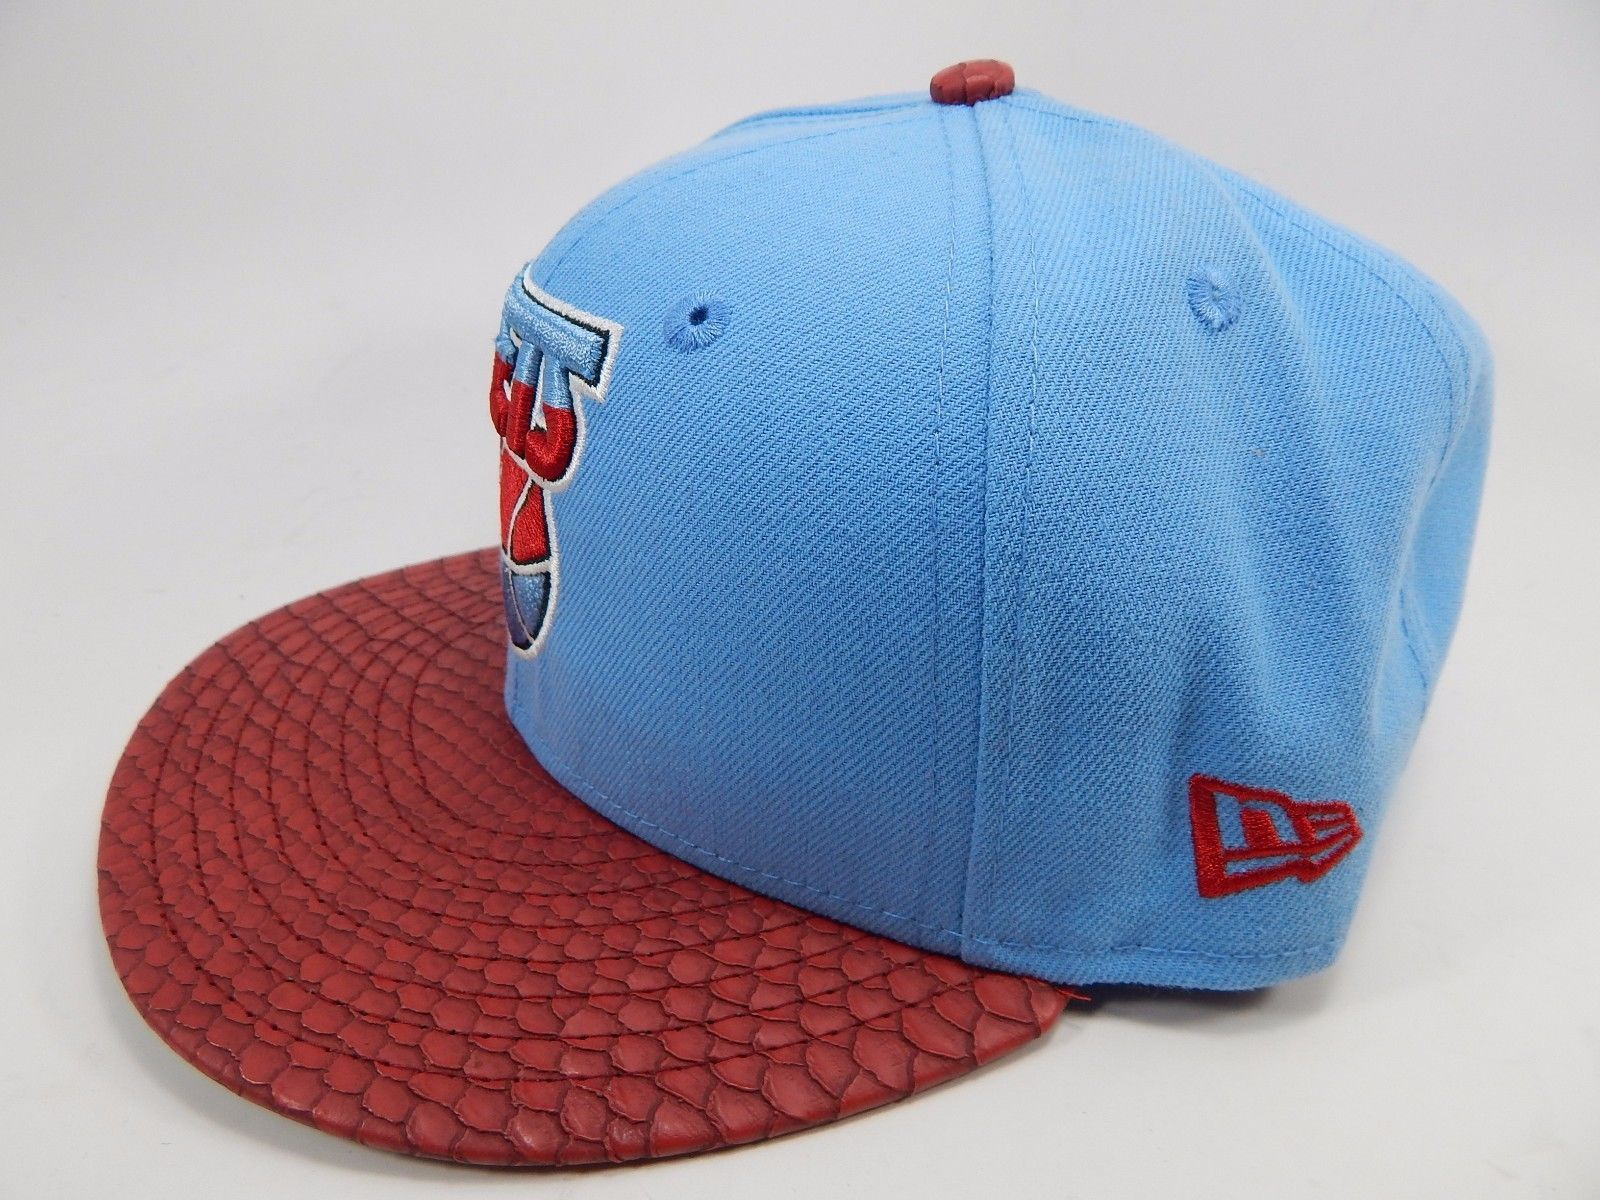 New Jersey Nets New Era Size 7 1/4 Fitted 59Fifty Official NBA Cap Hat Blue Red